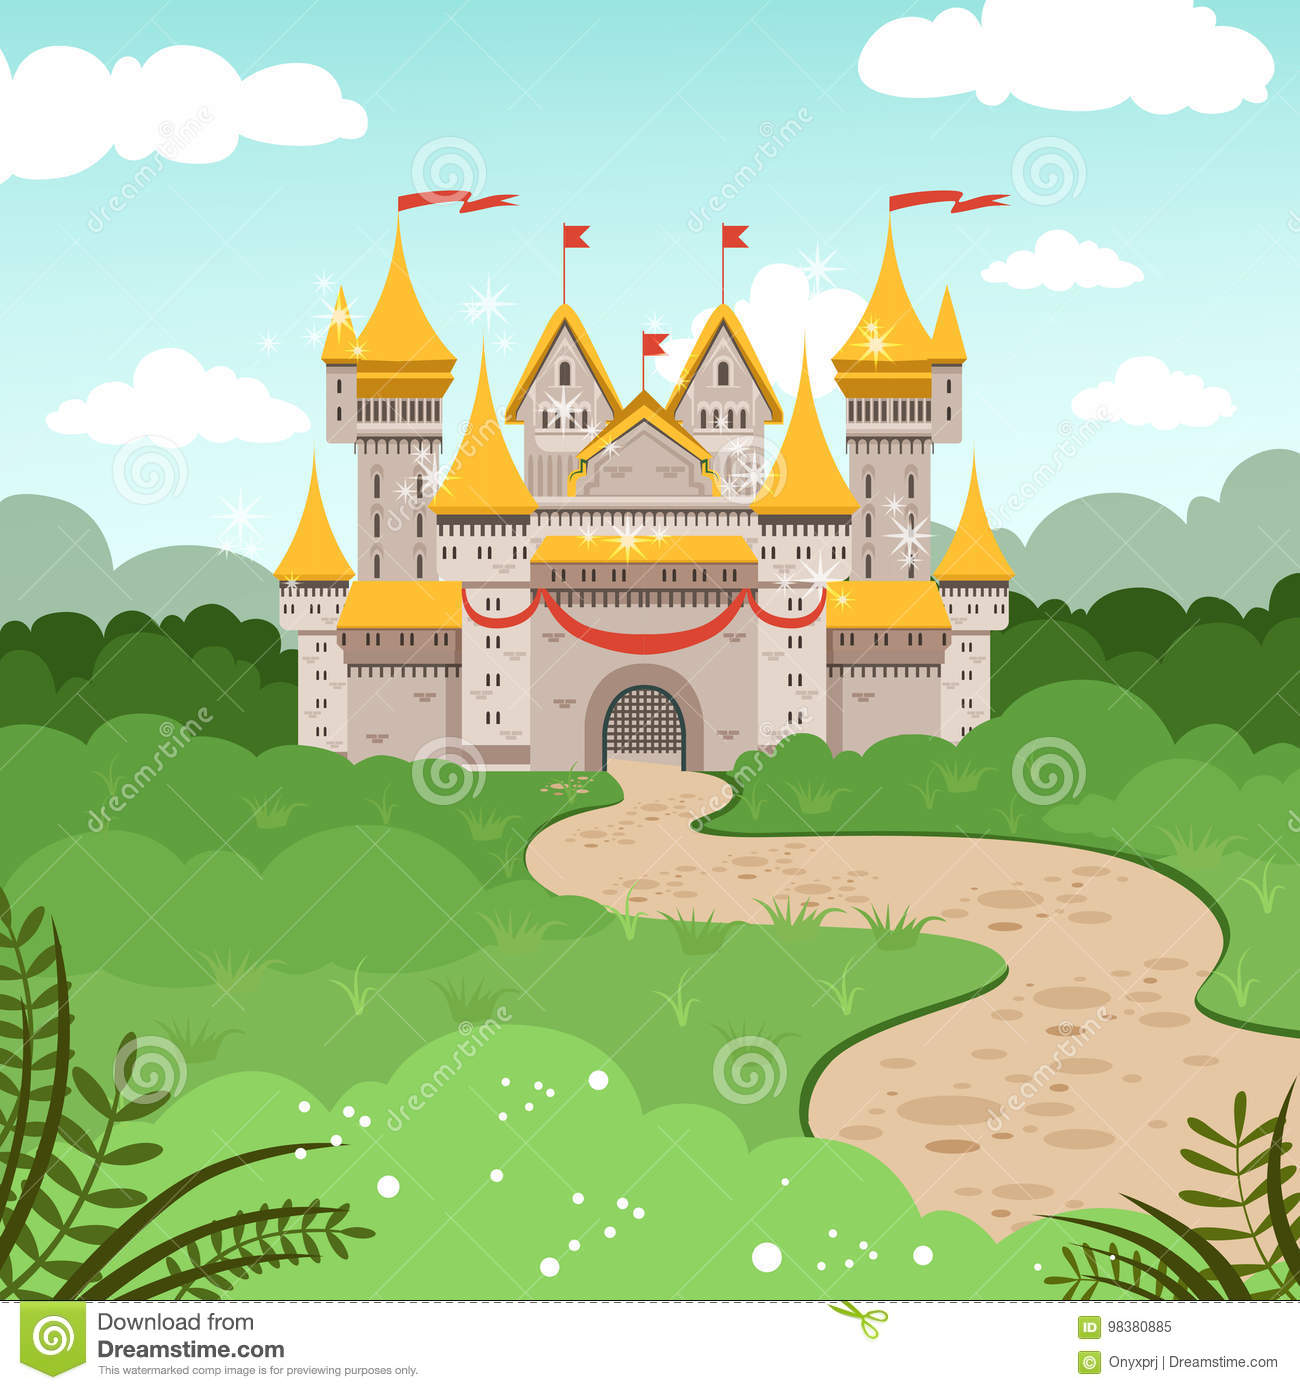 Fantasy landscape with fairytale castle. Vector illustration in cartoon style